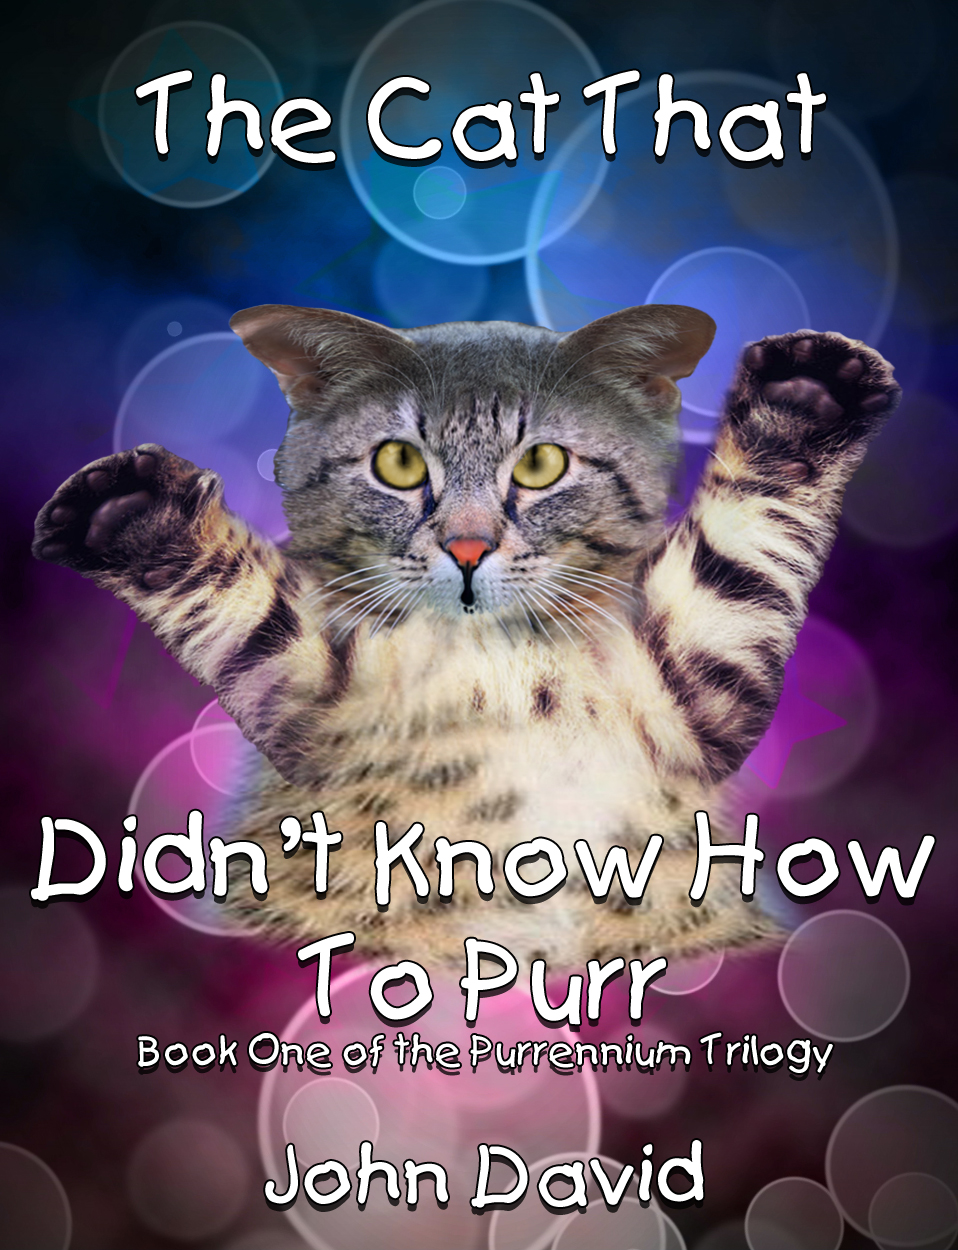 The Cat That Didn't Know How to Purr (Book One)